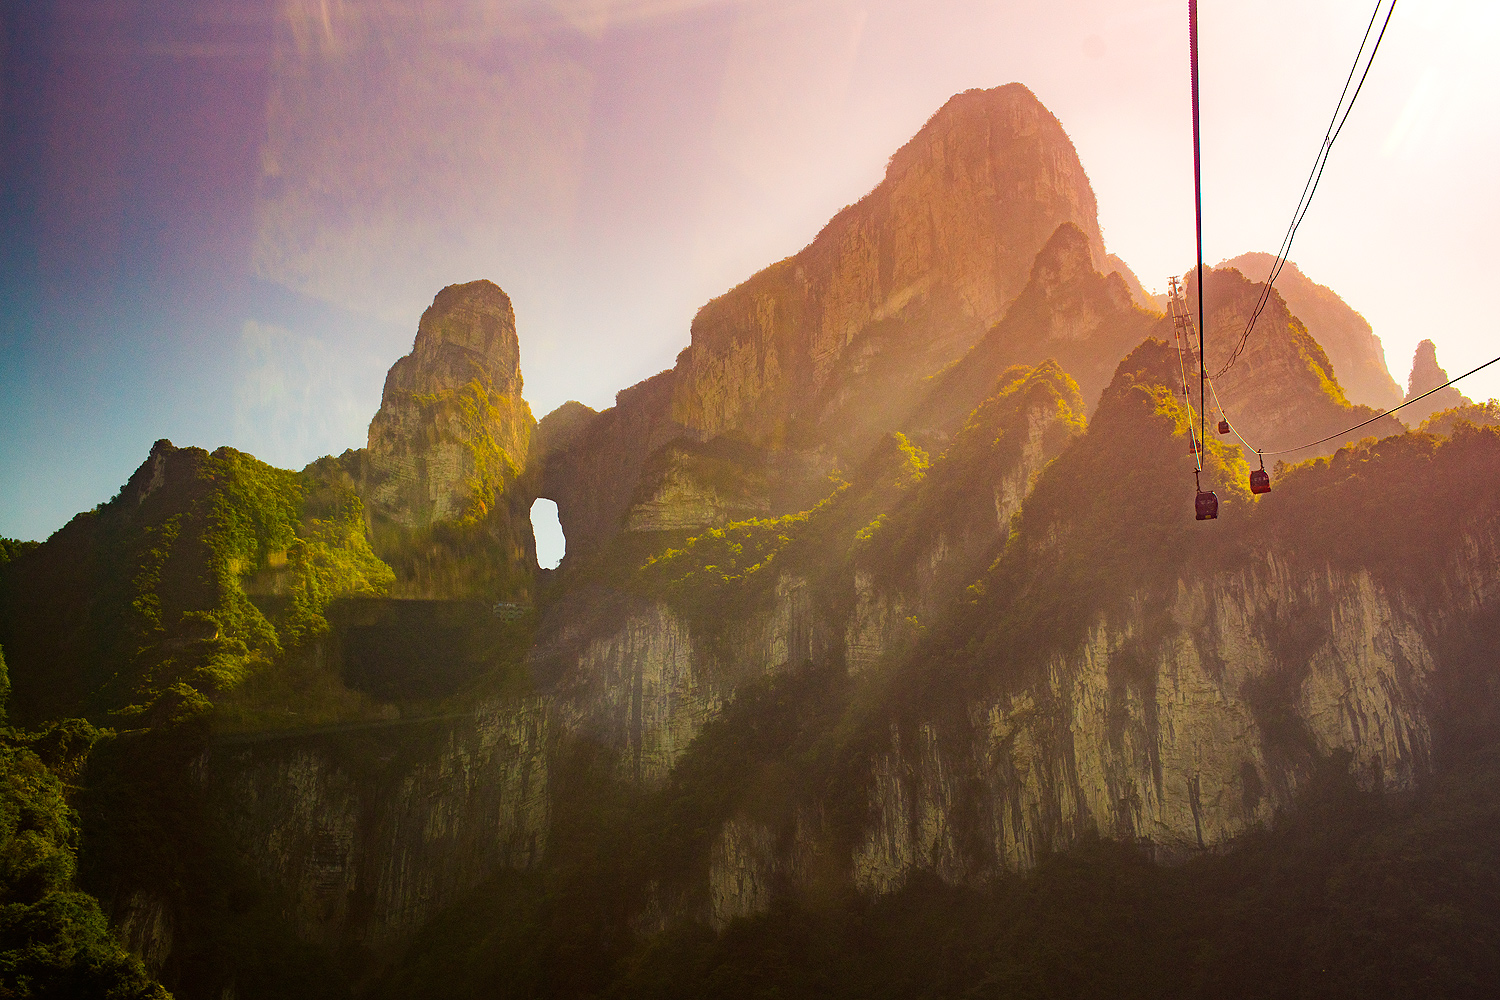 Cable Car am Tianment Mountain in Zhangjiajie (Hunan) China © PhotoTravelNomads.com